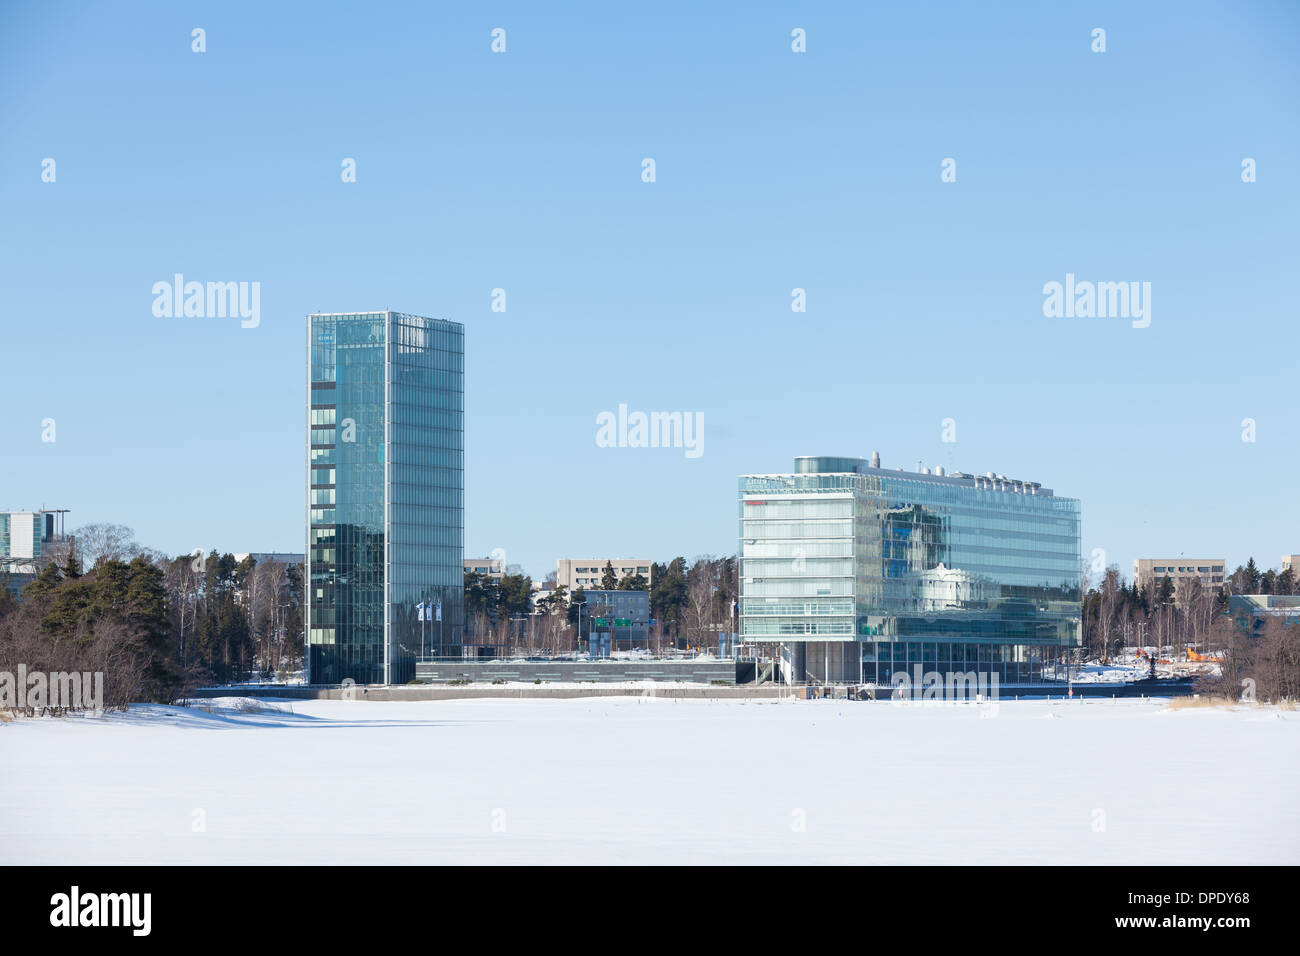 Espoo City And Finland Stock Photos & Espoo City And Finland Stock Images - Alamy